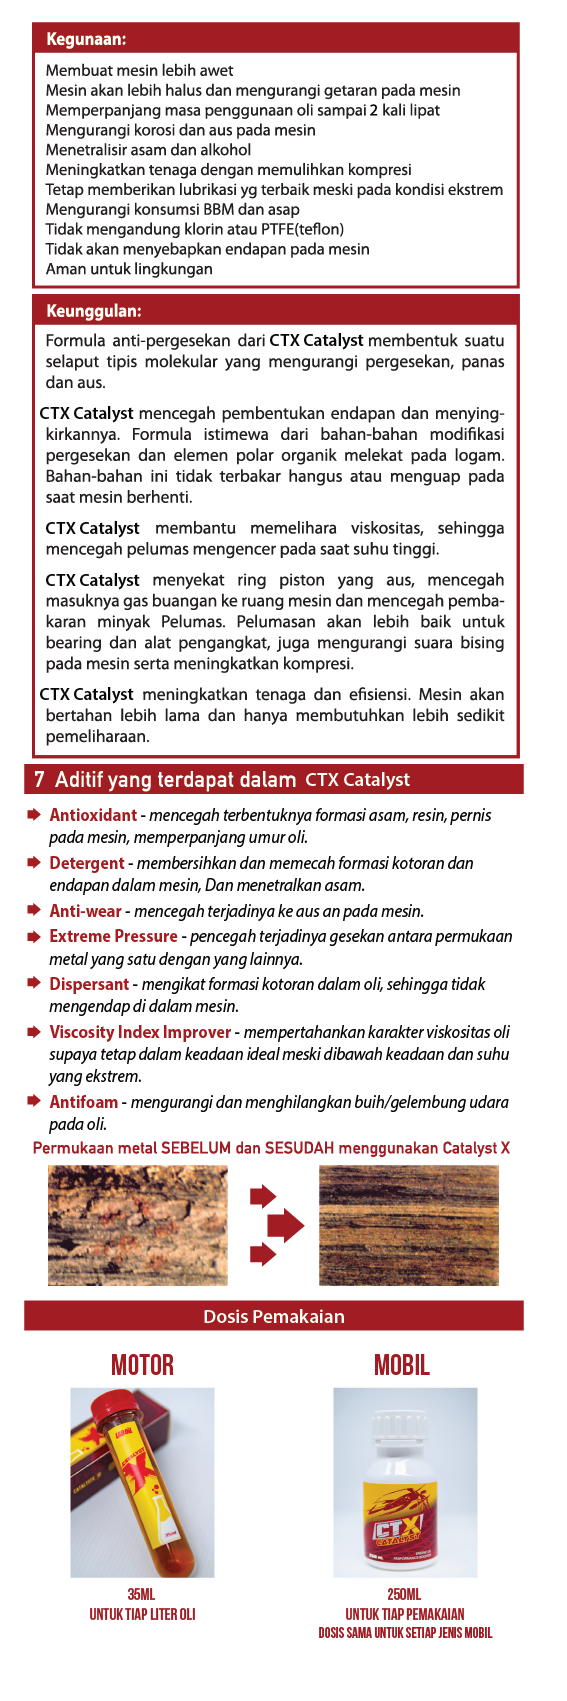 ctx catalyst product page-01.png